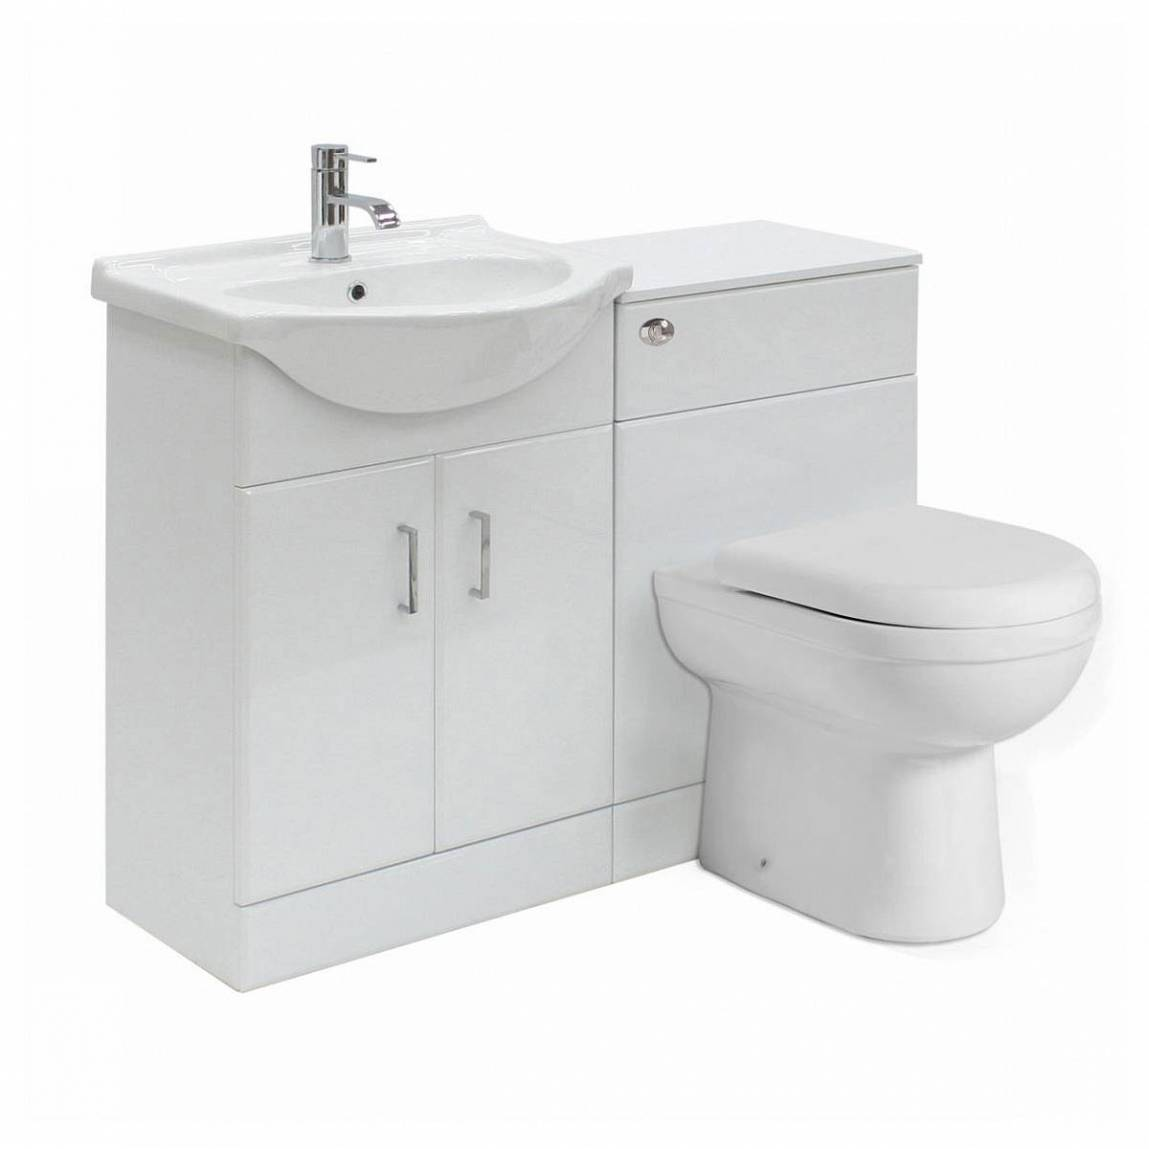 Image of Sienna Autograph White Gloss Combination Vanity Unit - Large